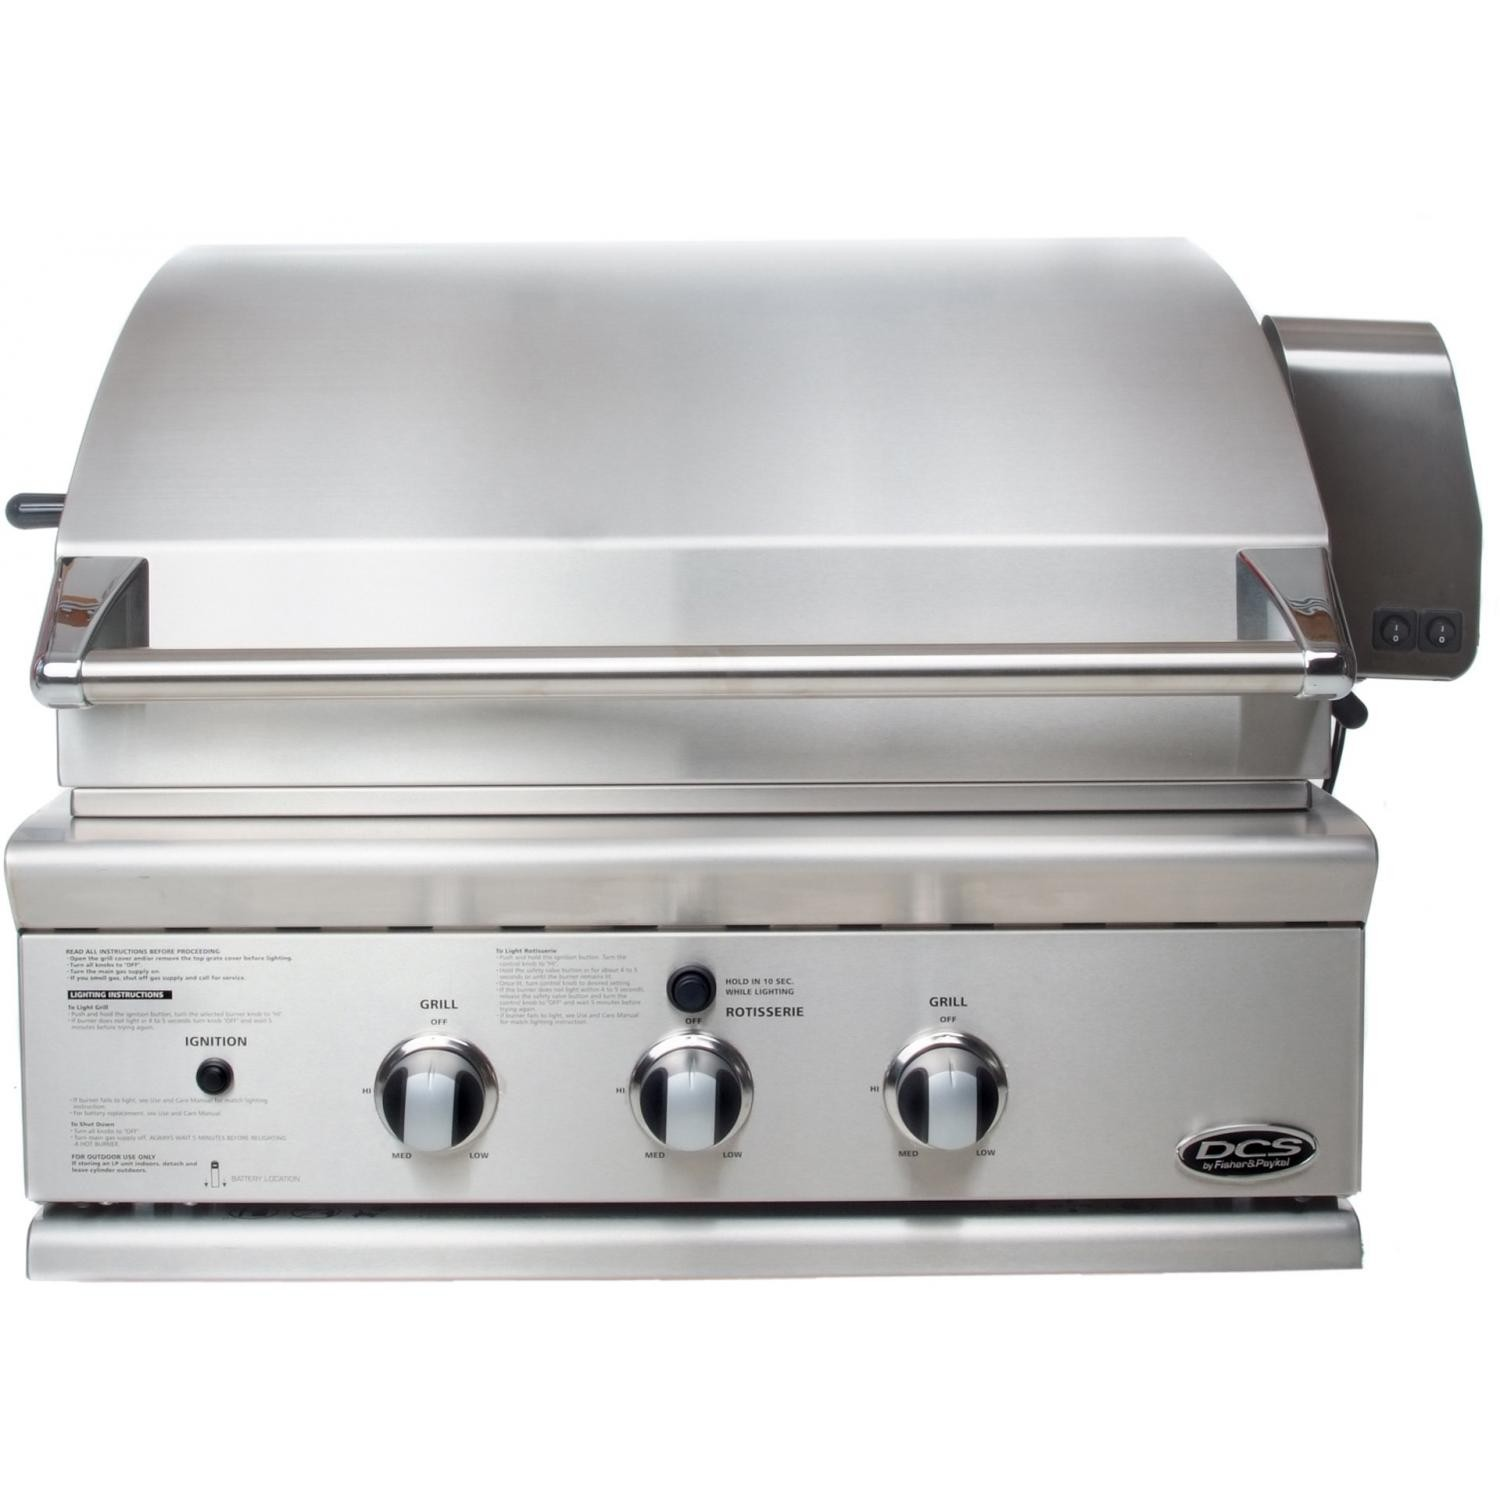 Dcs 30 Inch Gas Barbecue Grill Las Vegas Outdoor Kitchen